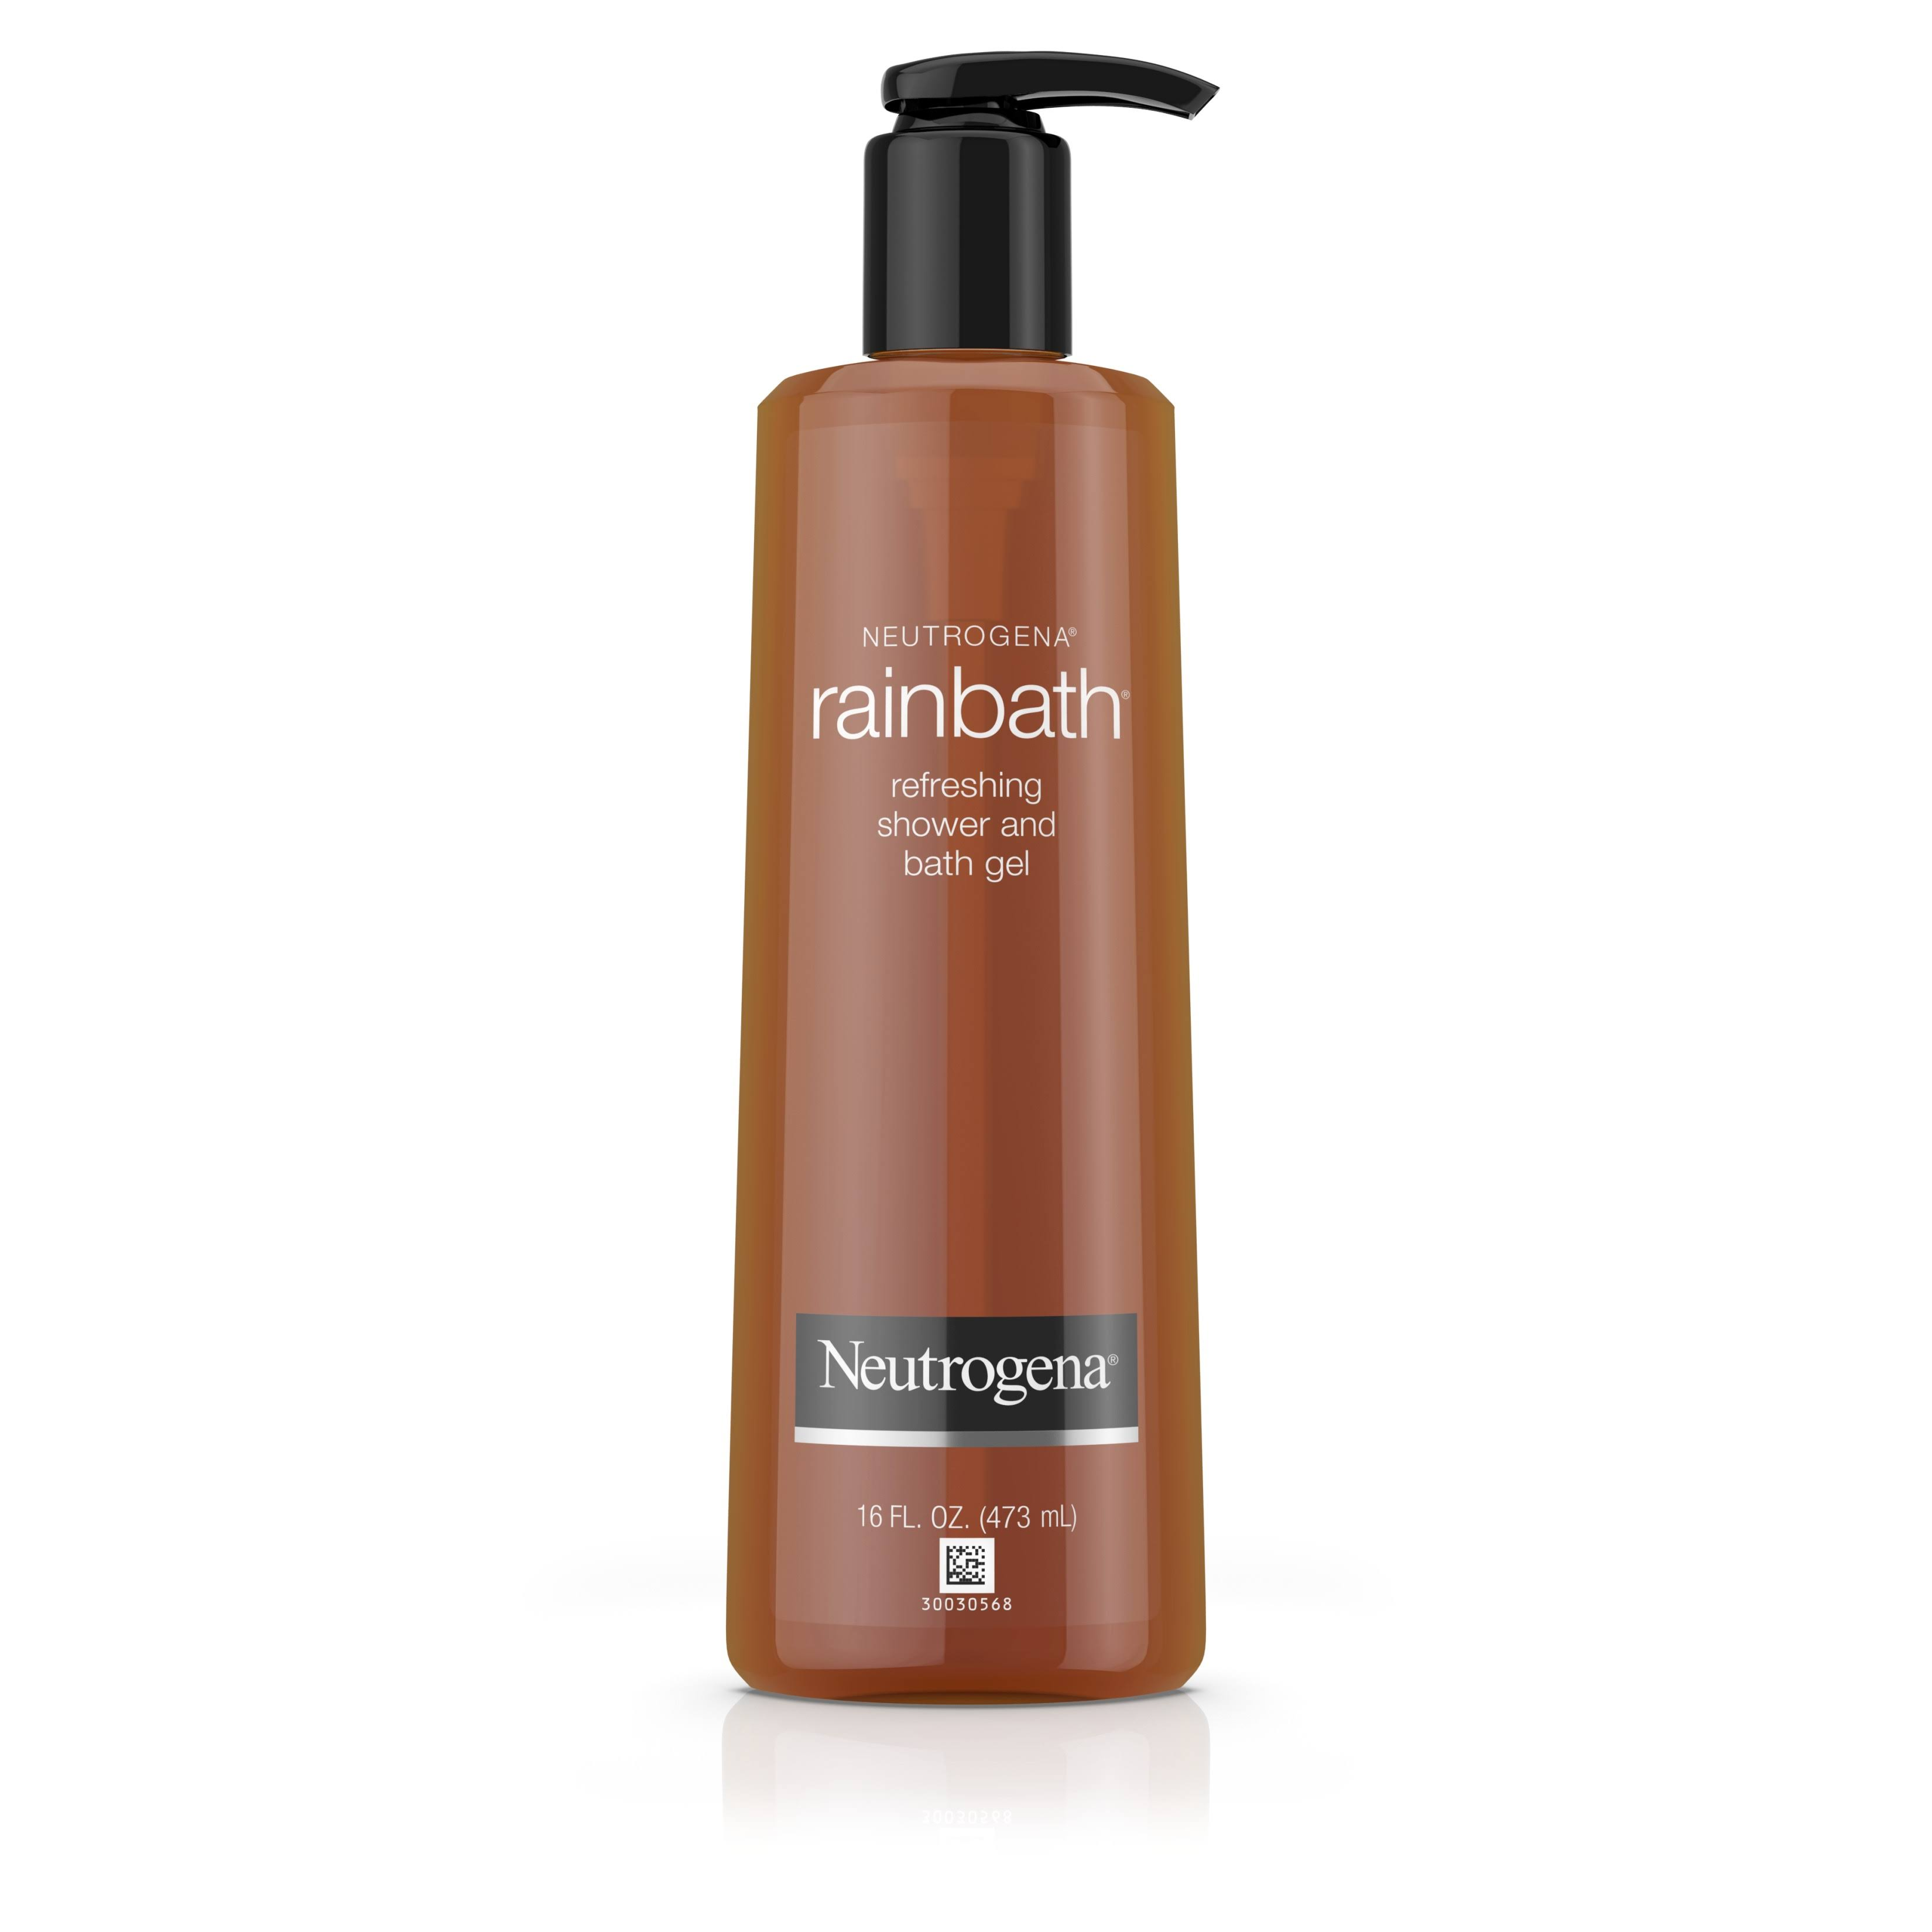 Neutrogena Rainbath Refreshing Shower and Bath Gel - 16oz